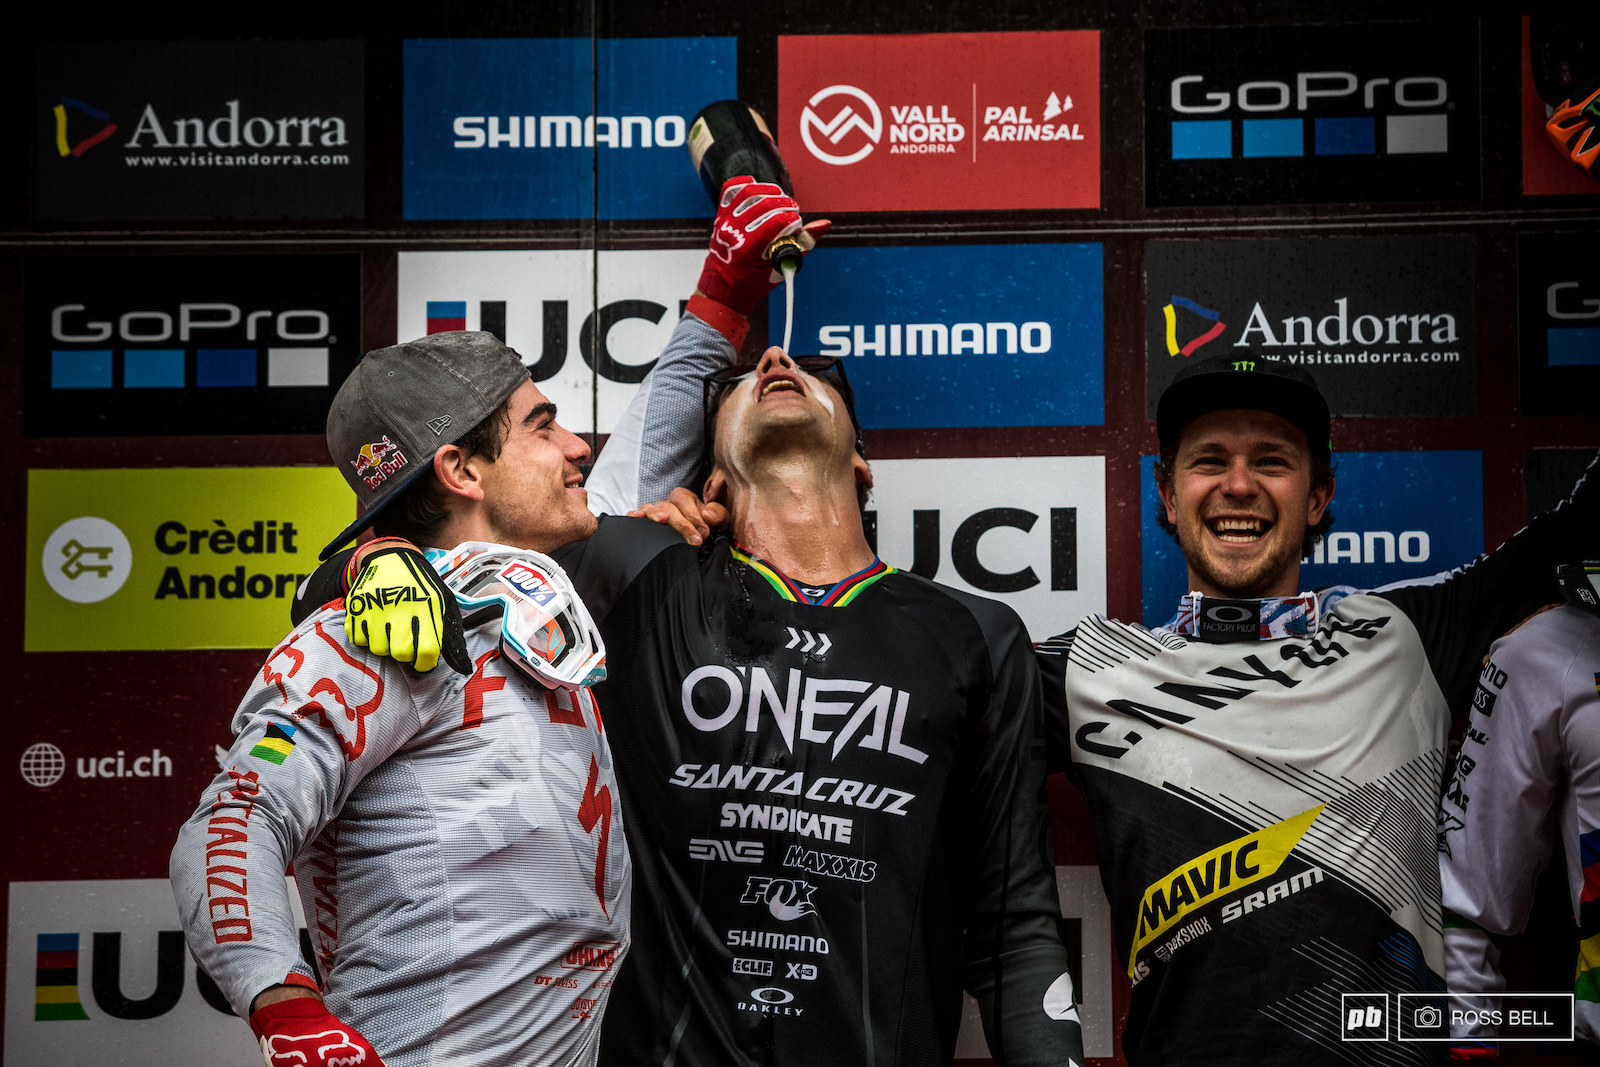 Greg Minnaar will have been annoyed at missing out on the top step by so little but its not all bad. He extended his lead in the overall and is heading to Lenzerheide next weekend where he won 2 years ago.